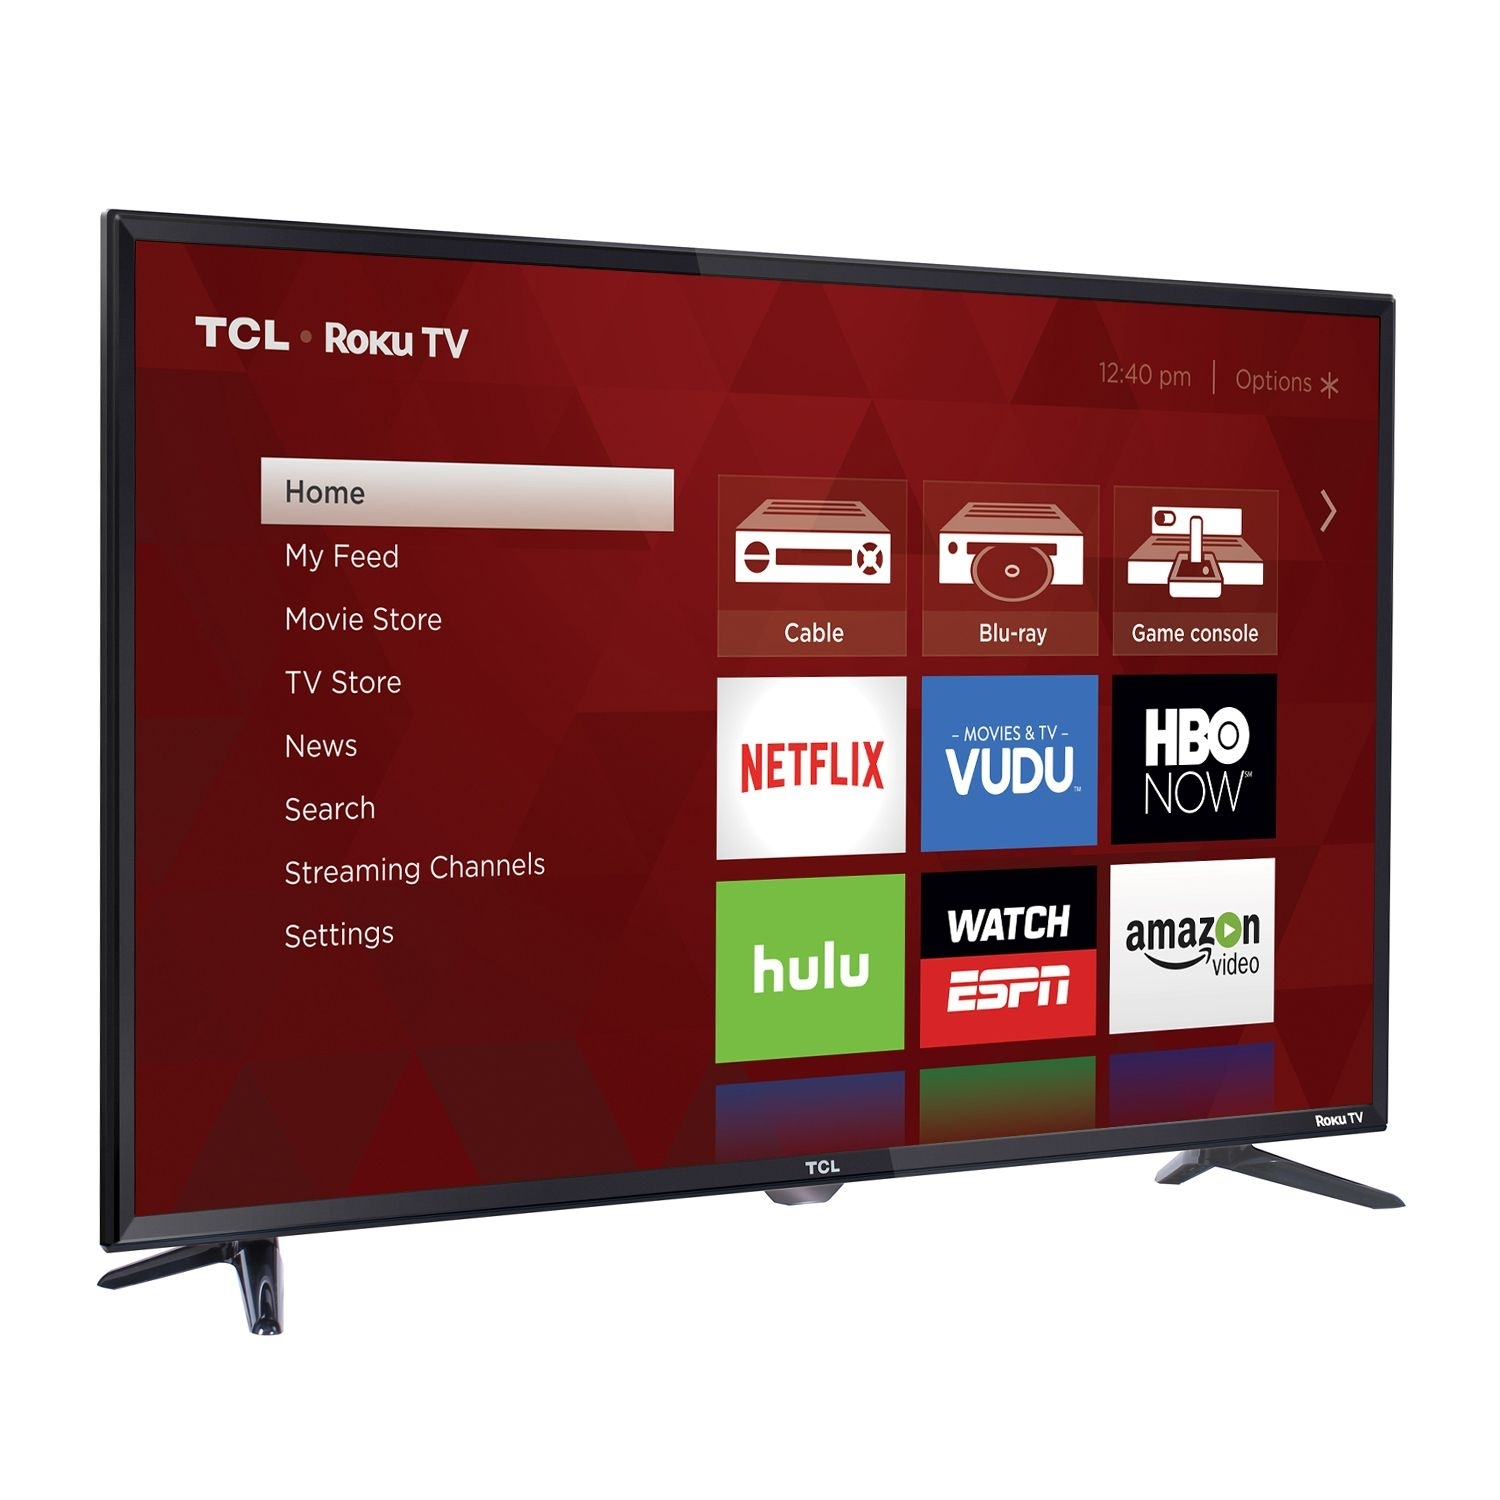 "TCL 40FS3750 1080p 40"" 120Hz LED Roku TV, Black  (Certified Refurbished)"